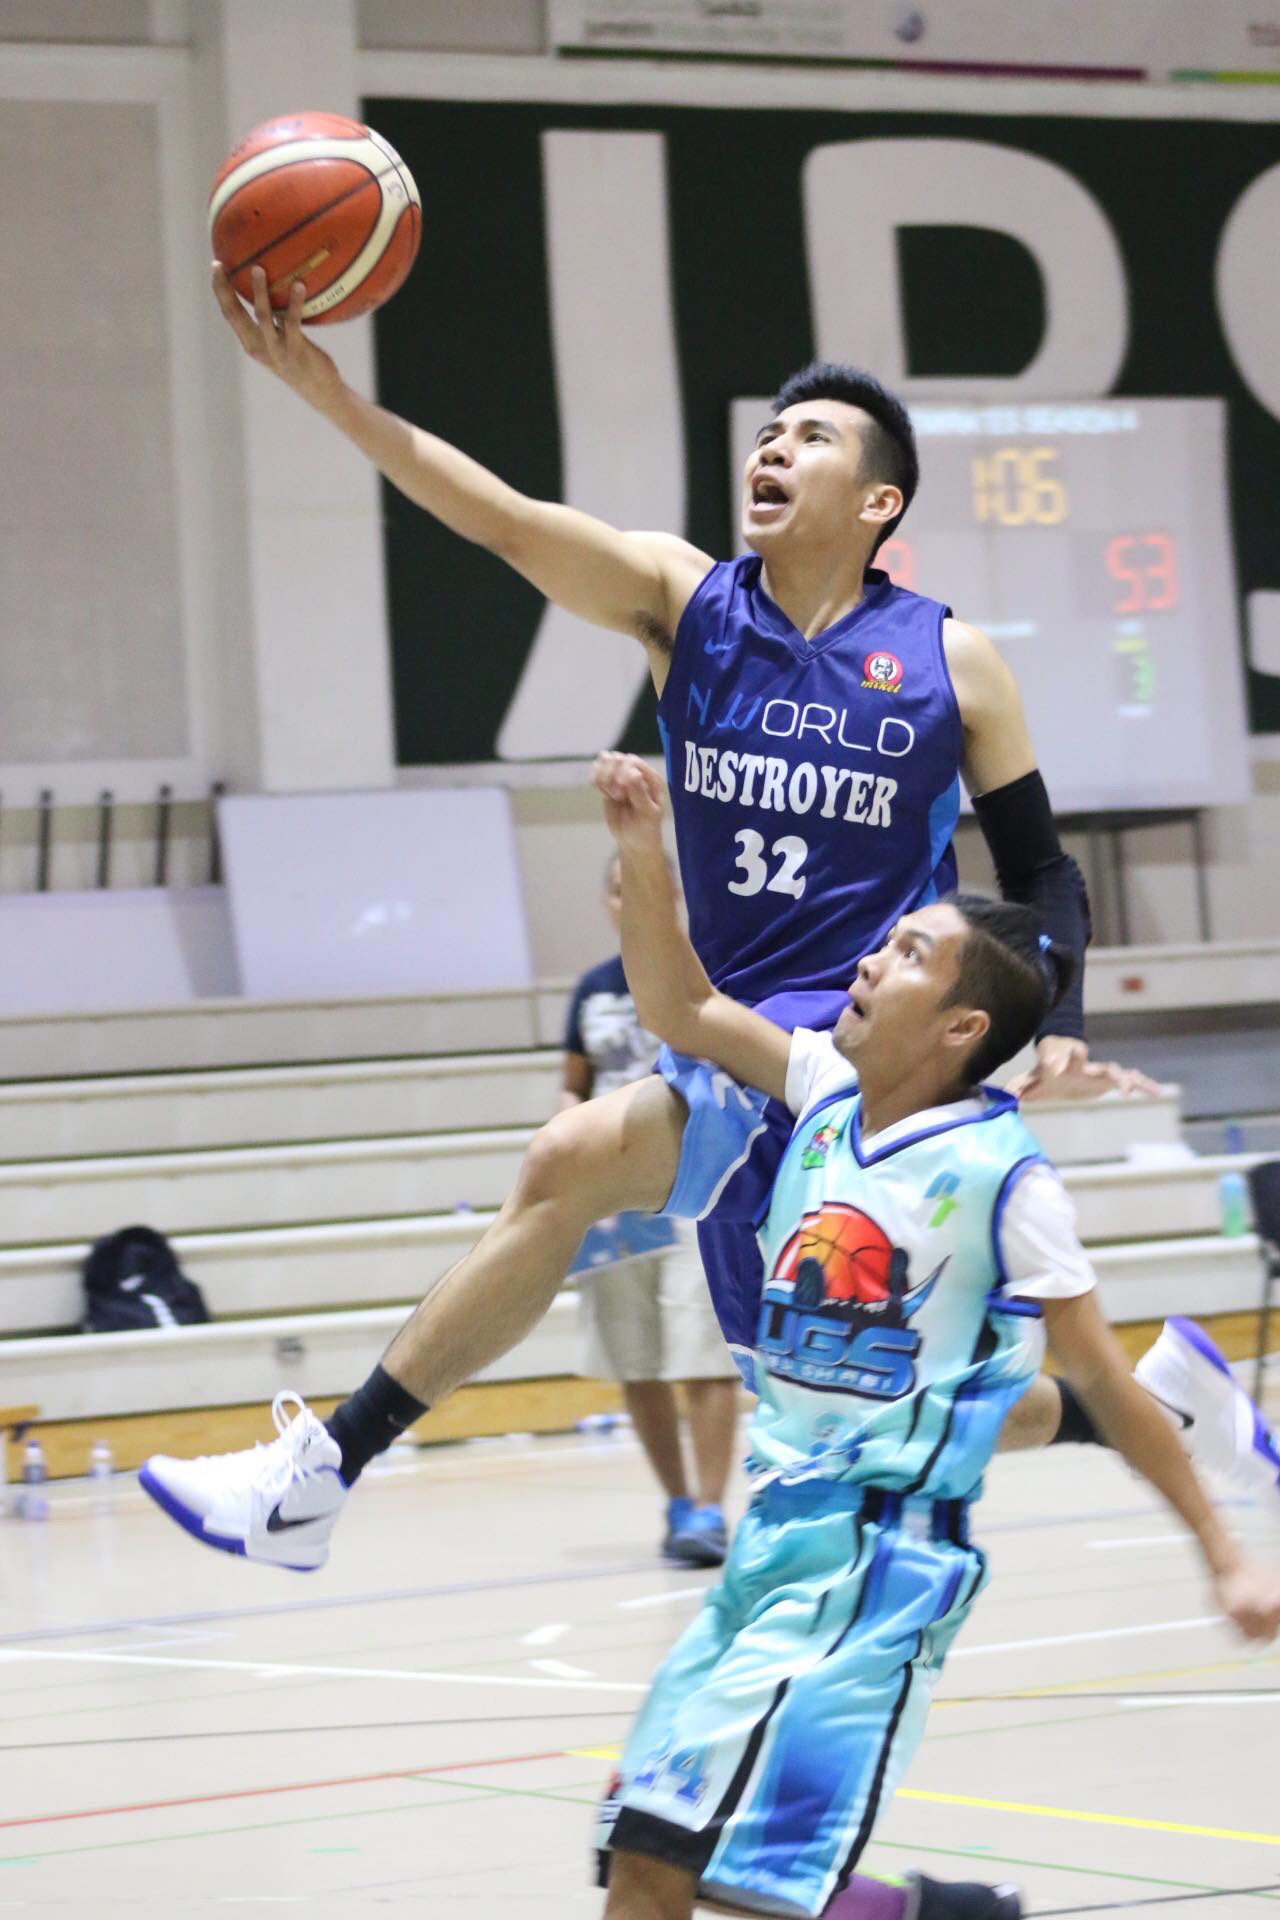 Destroyers destroy UGS, 78-68